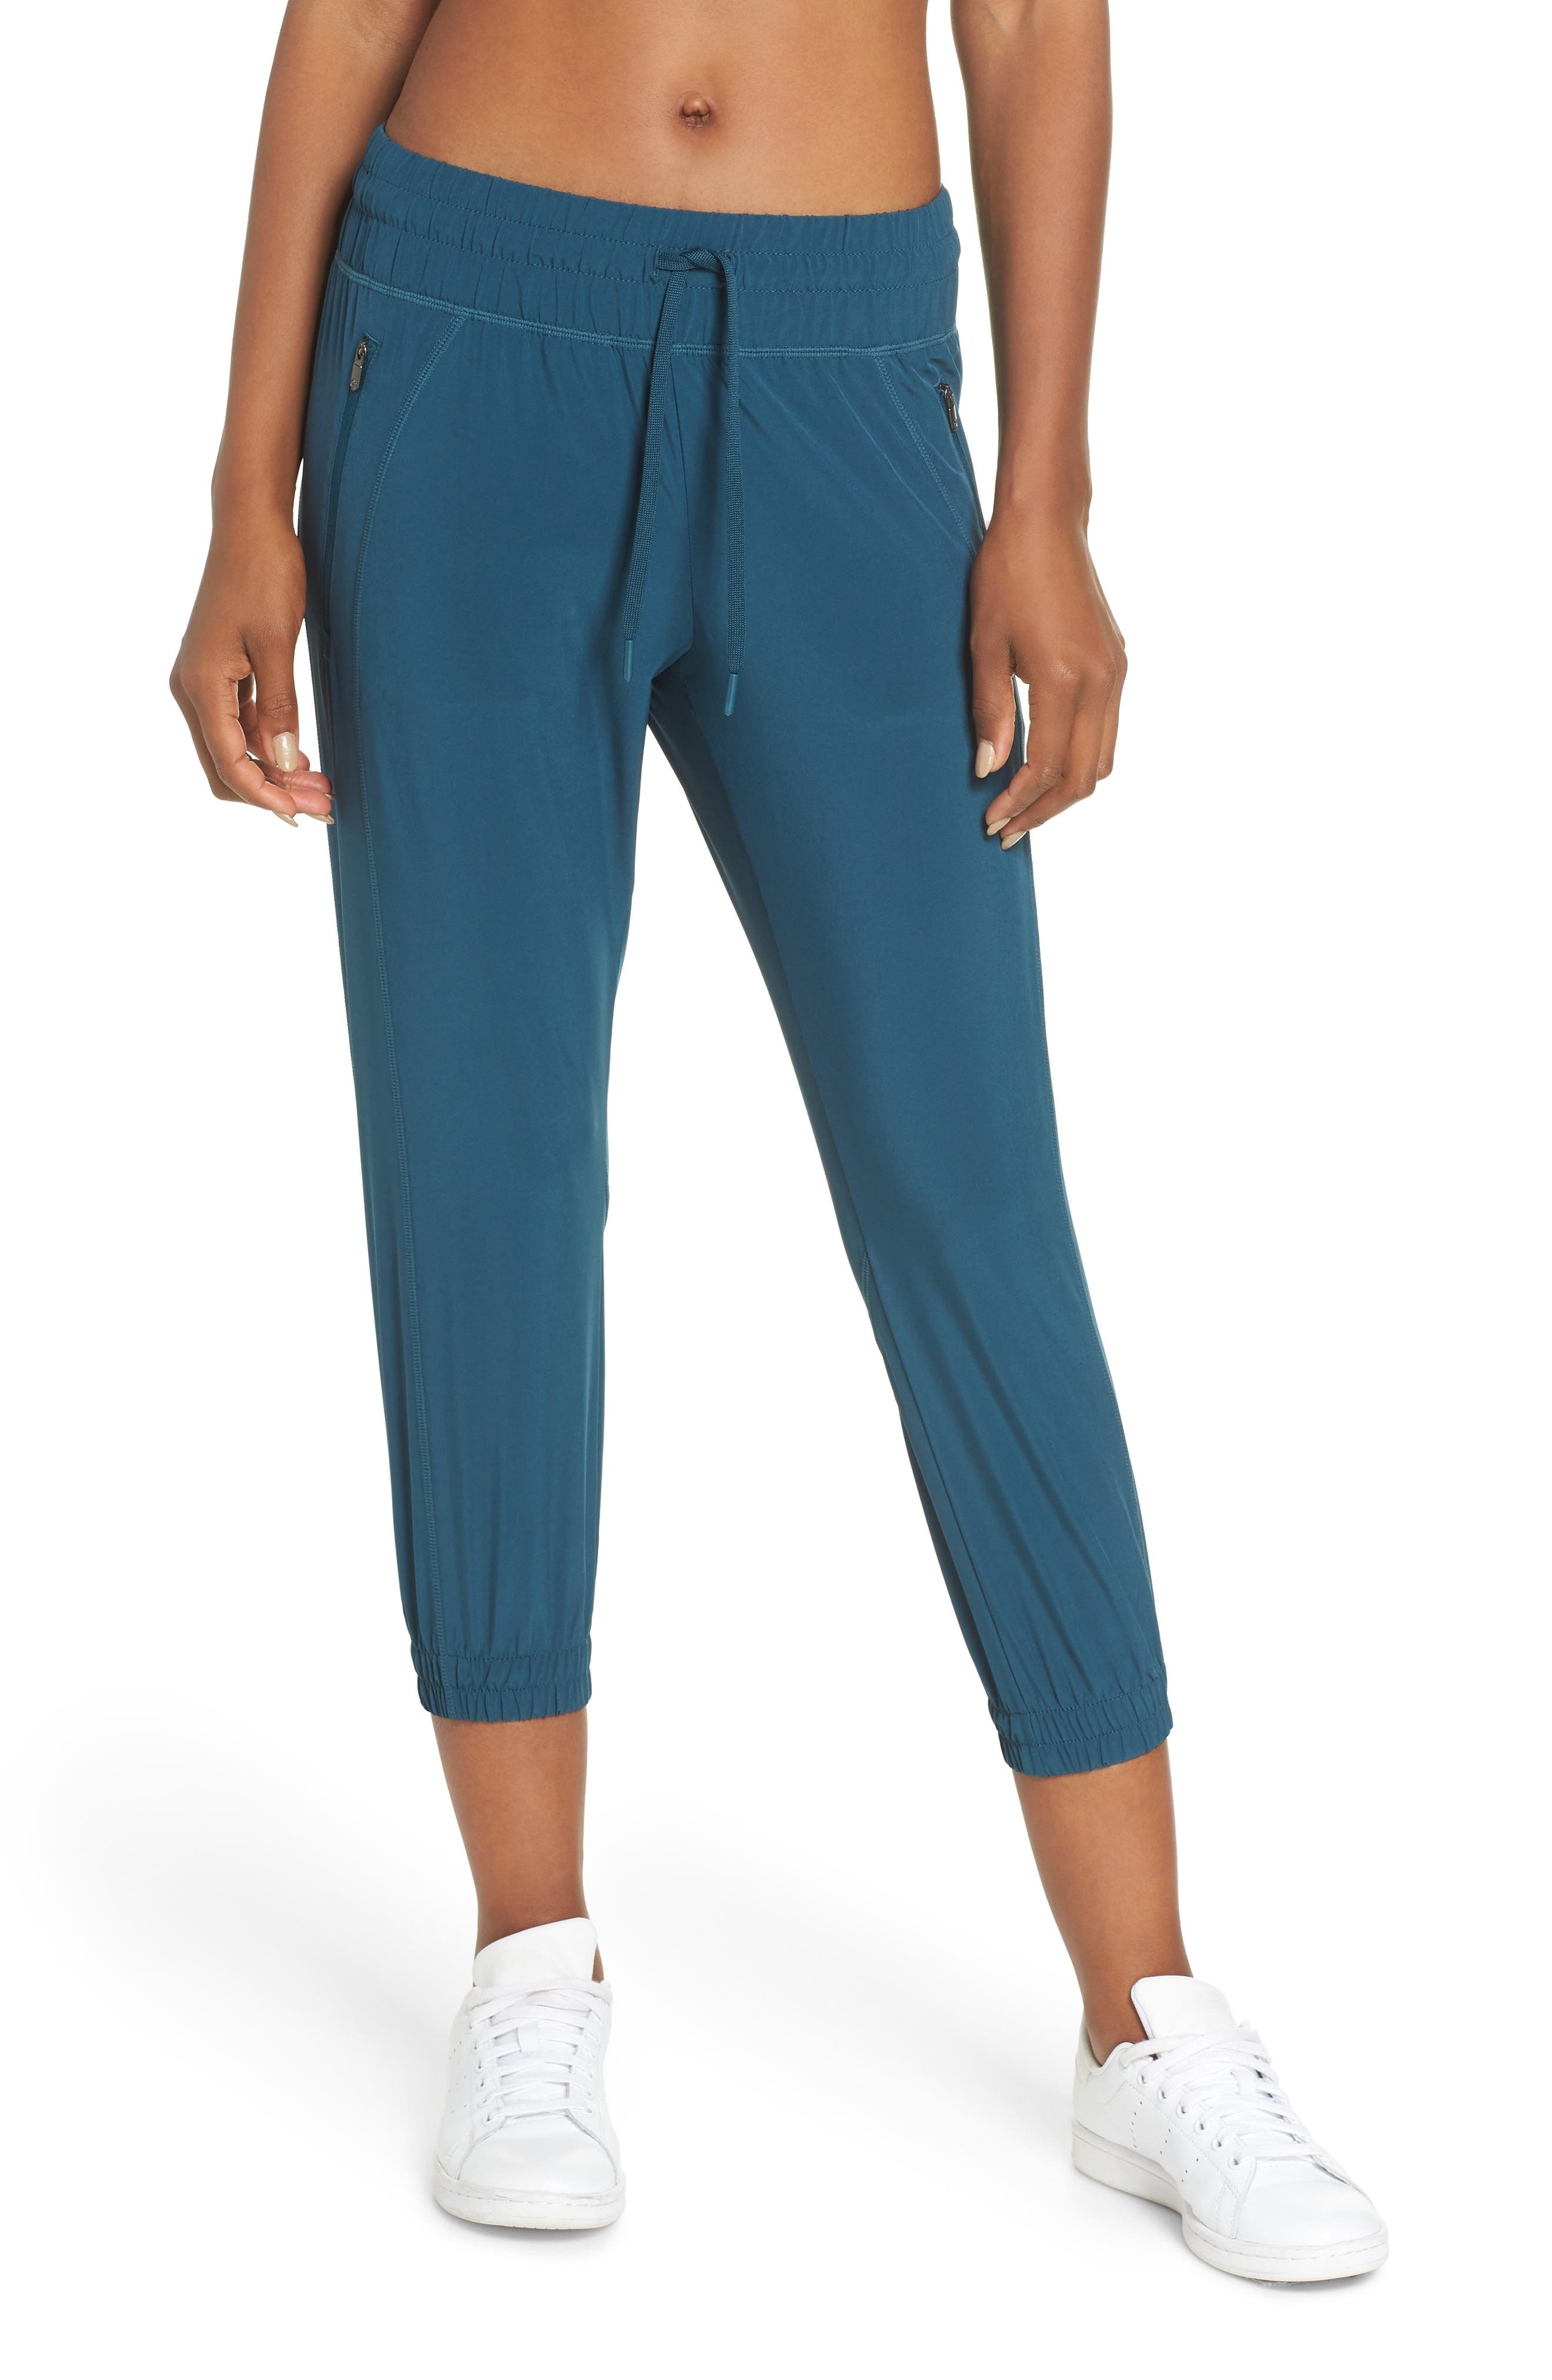 Out & About 2 Crop Pants,                         Main,                         color, TEAL ABYSS